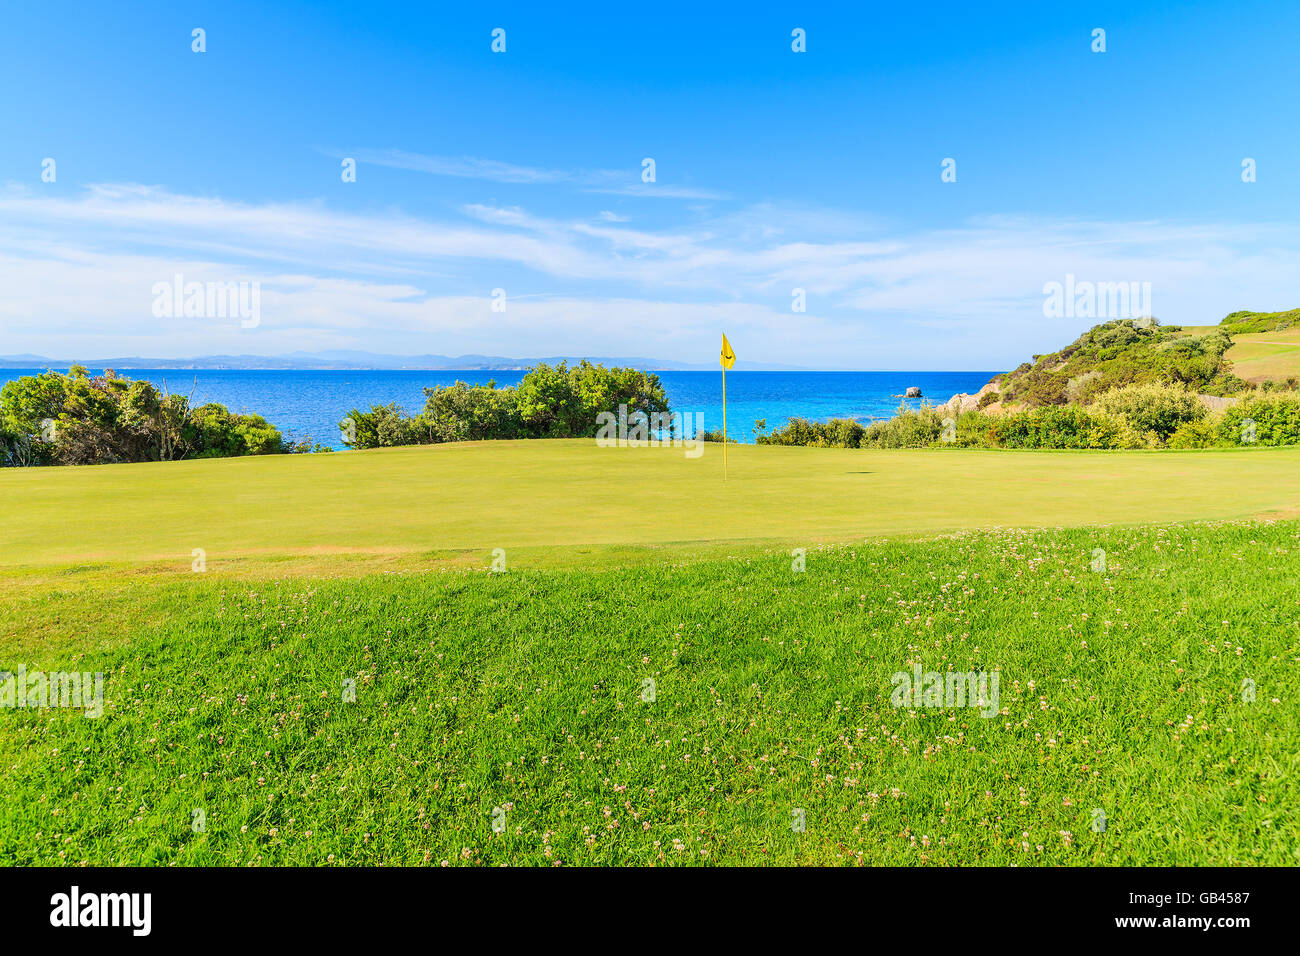 CORSICA ISLAND, FRANCE - JUN 25, 2015: Green grass area on golf course playing area on Corsica island, France. - Stock Image